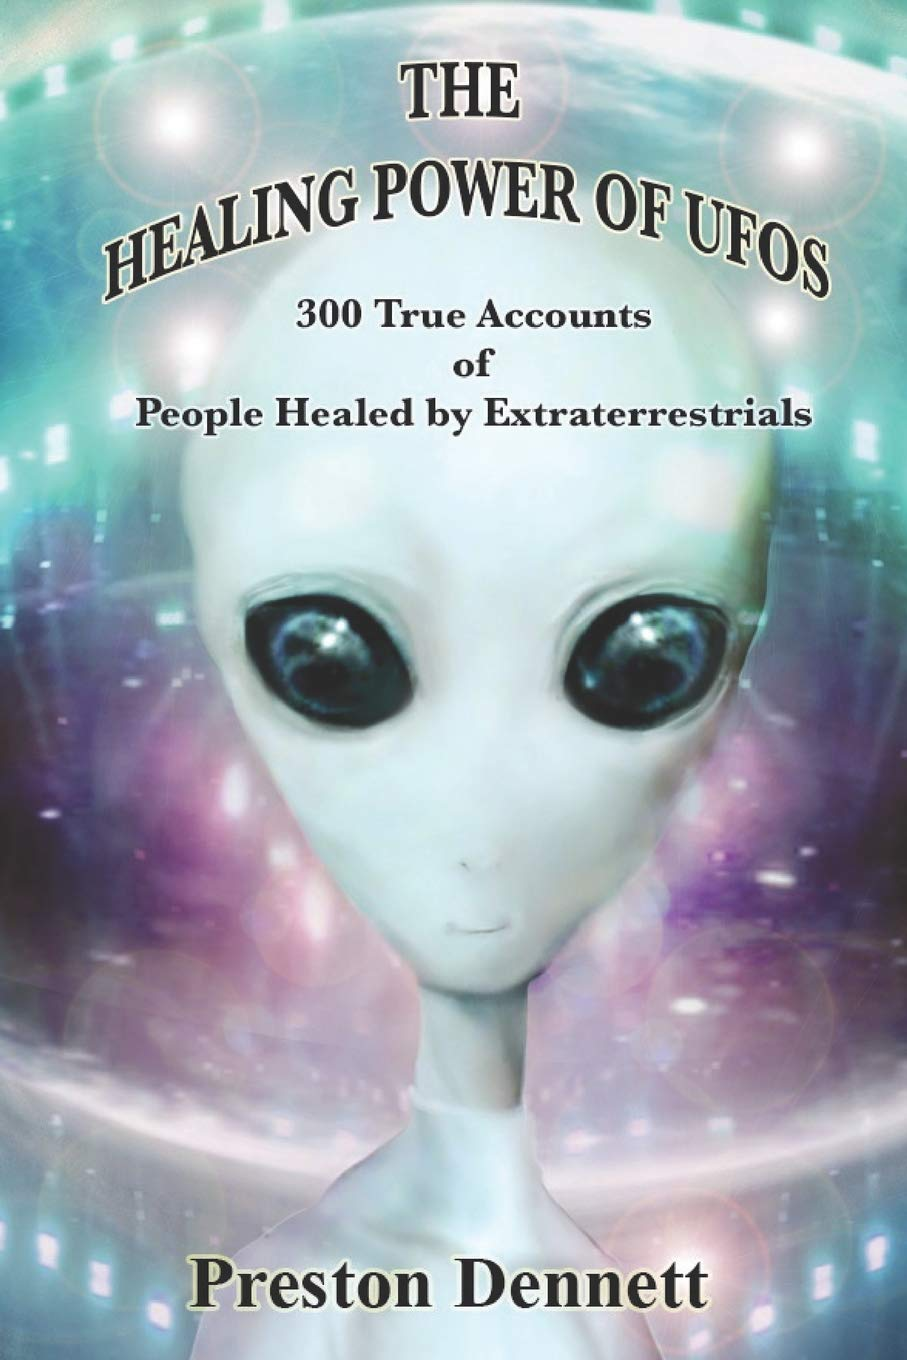 Image OfThe Healing Power Of UFOs: 300 True Accounts Of People Healed By Extraterrestrials